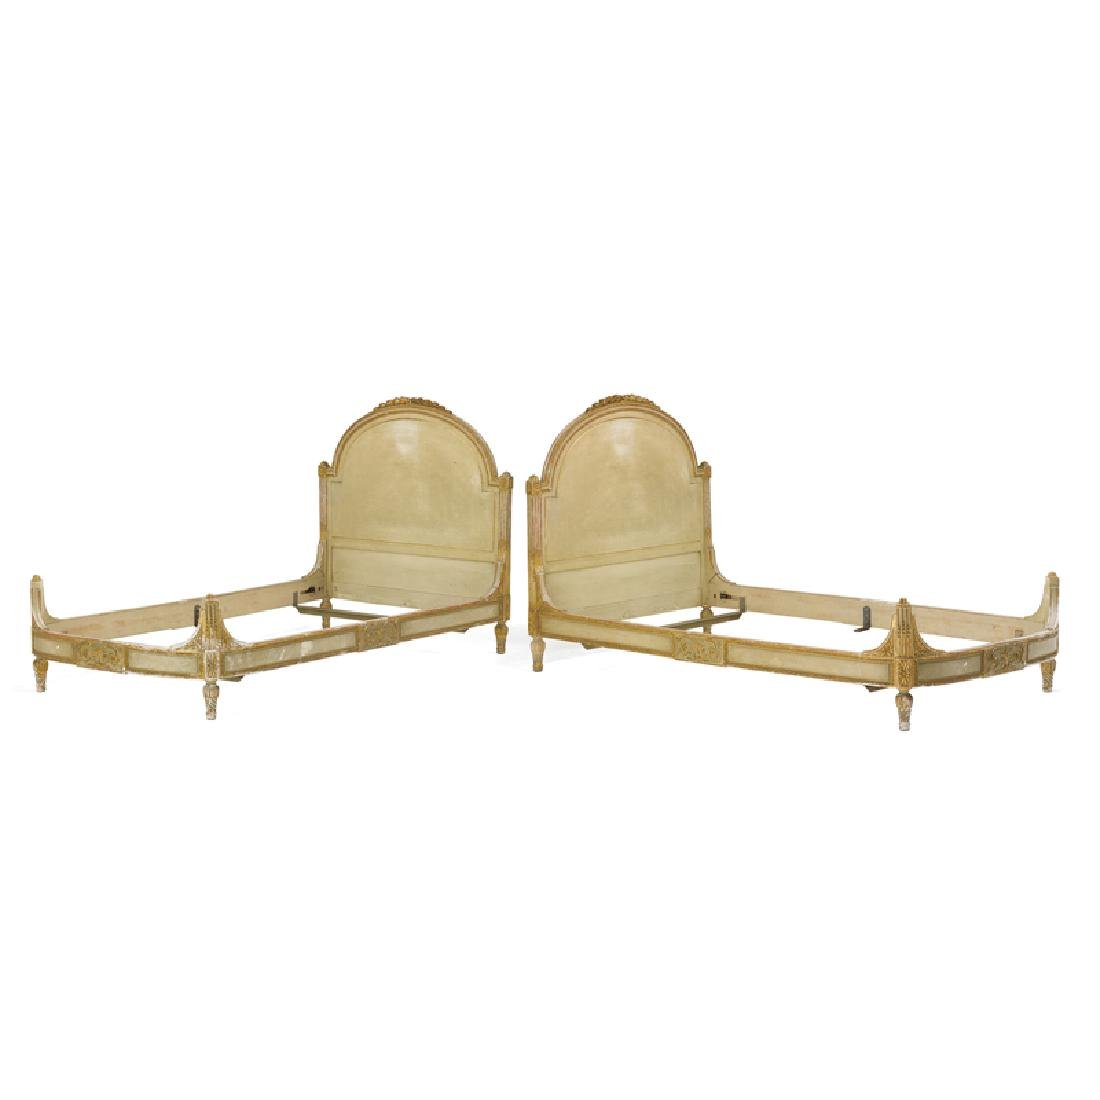 PAIR OF LOUIS XVI STYLE TWIN BEDS - 2